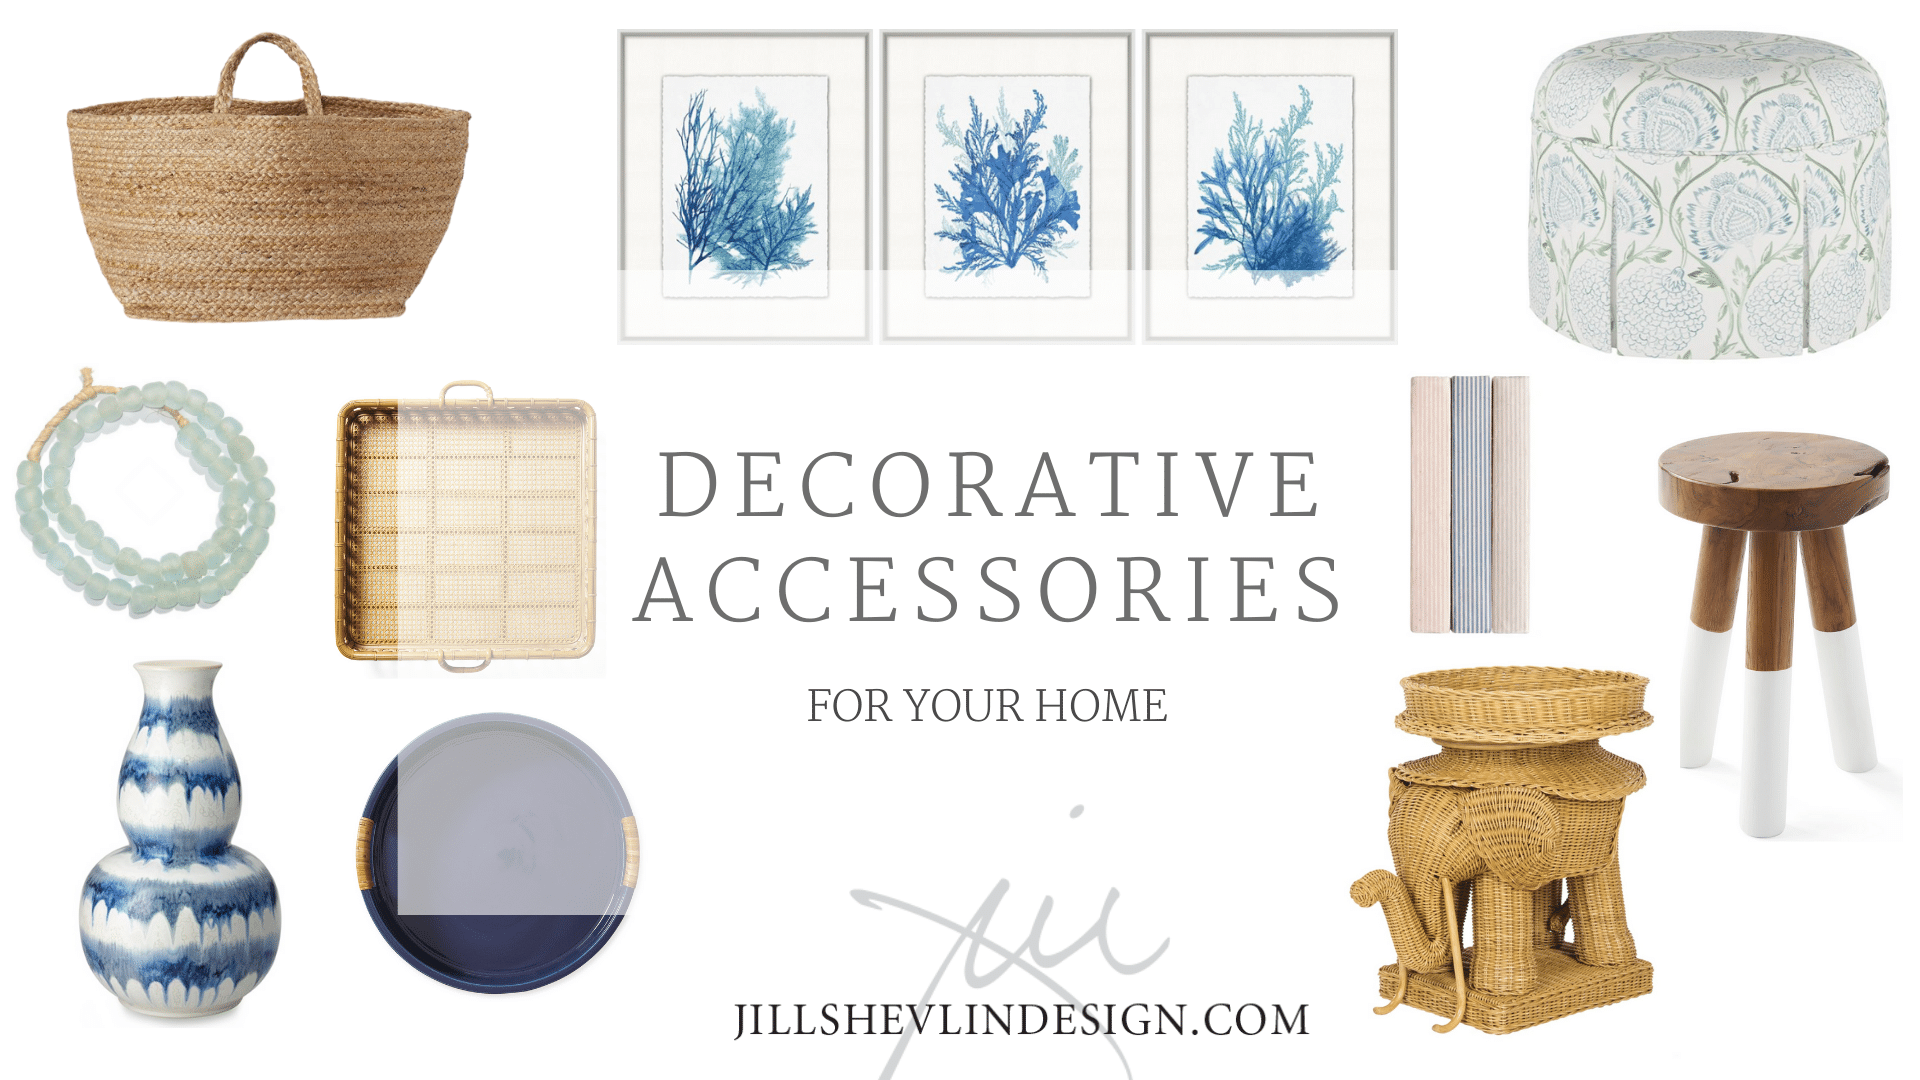 Accesoires Shop Vero Beach Home Decor Accessories Jill Shevlin Design Vero Beach Interior Designer